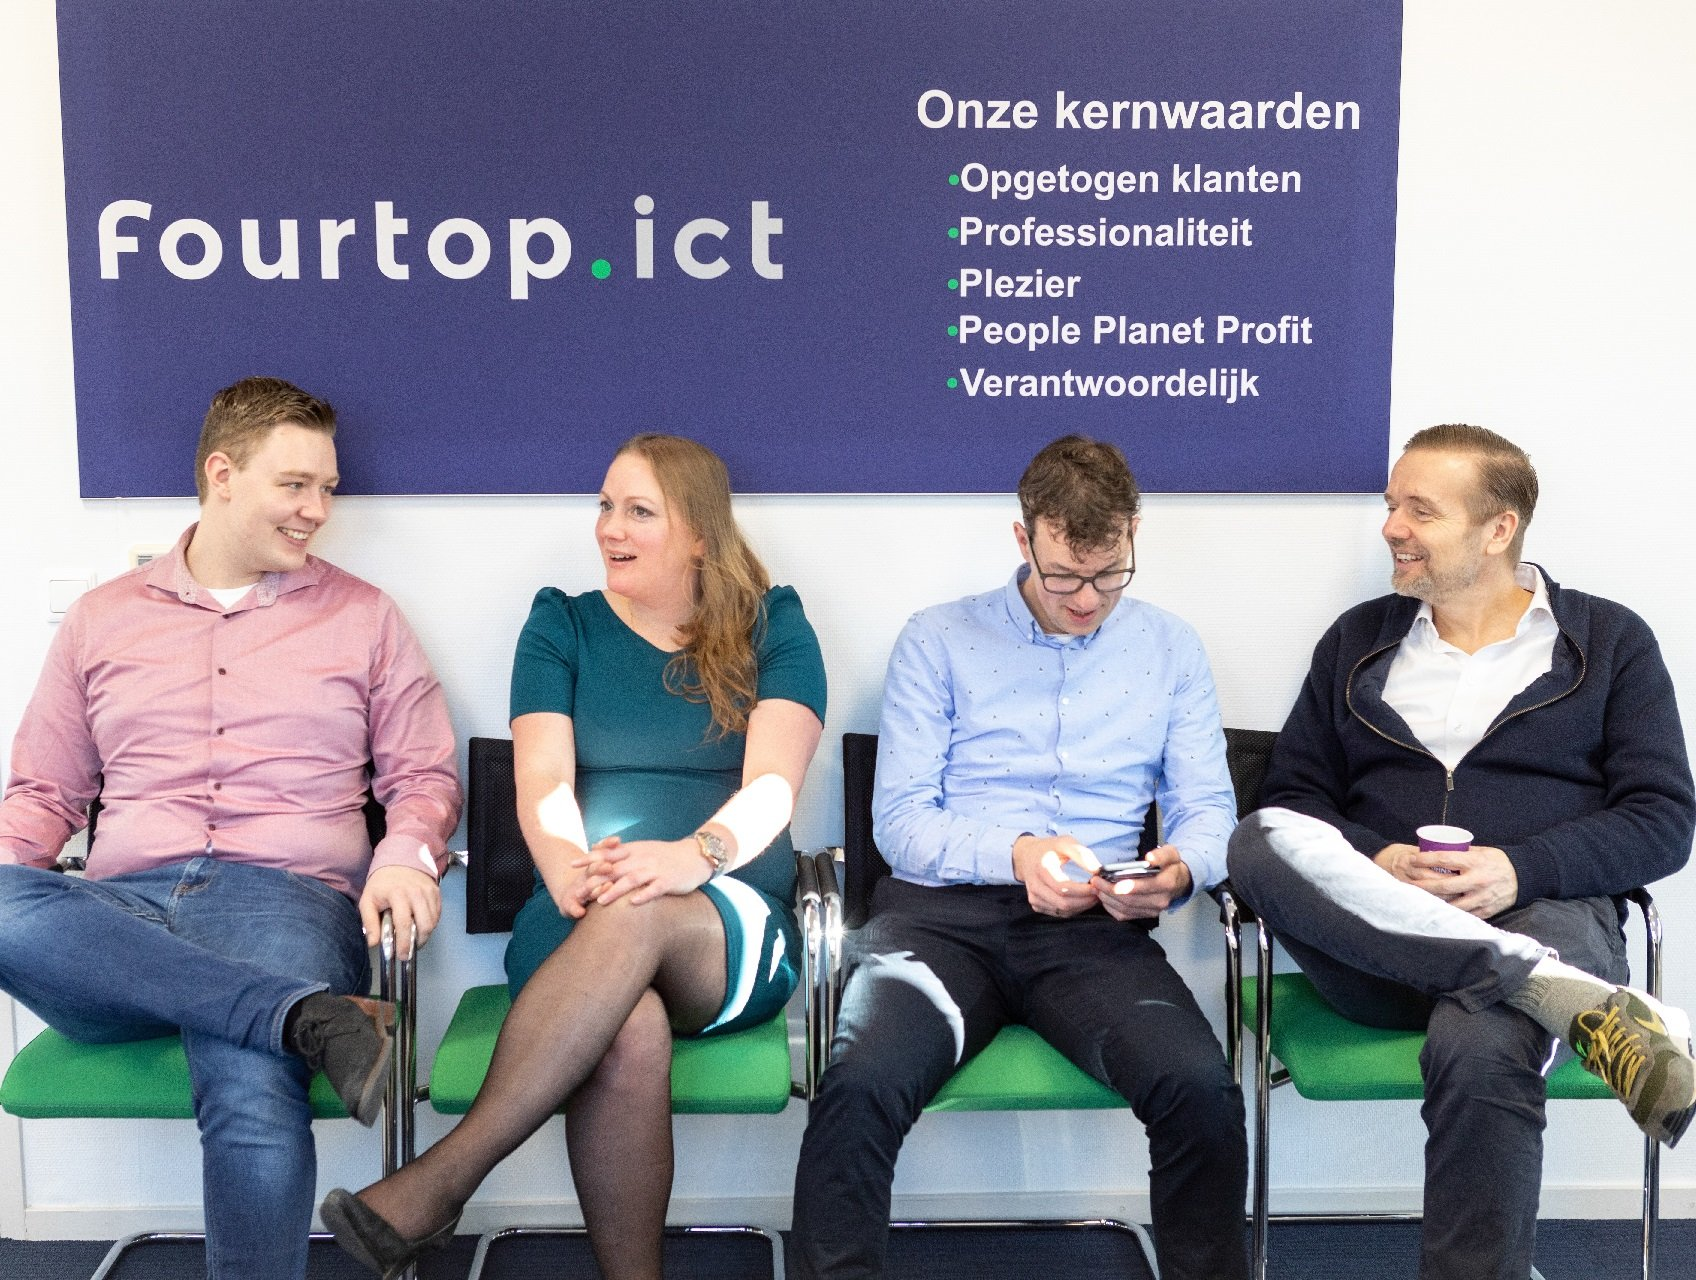 De competentiemeting | Fourtop ICT